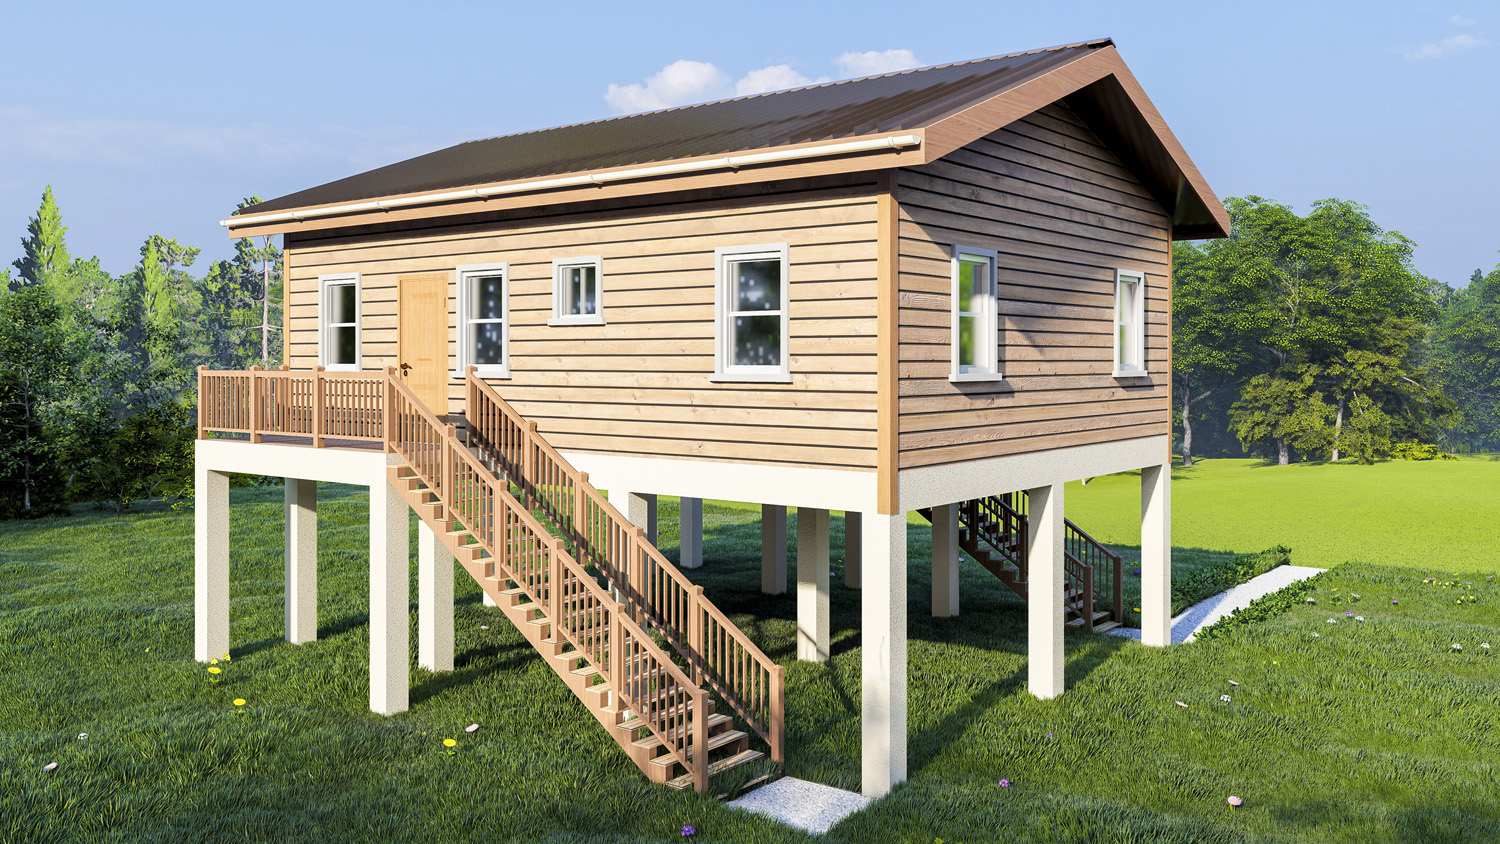 DFC 3 bedroom elevated wooden home